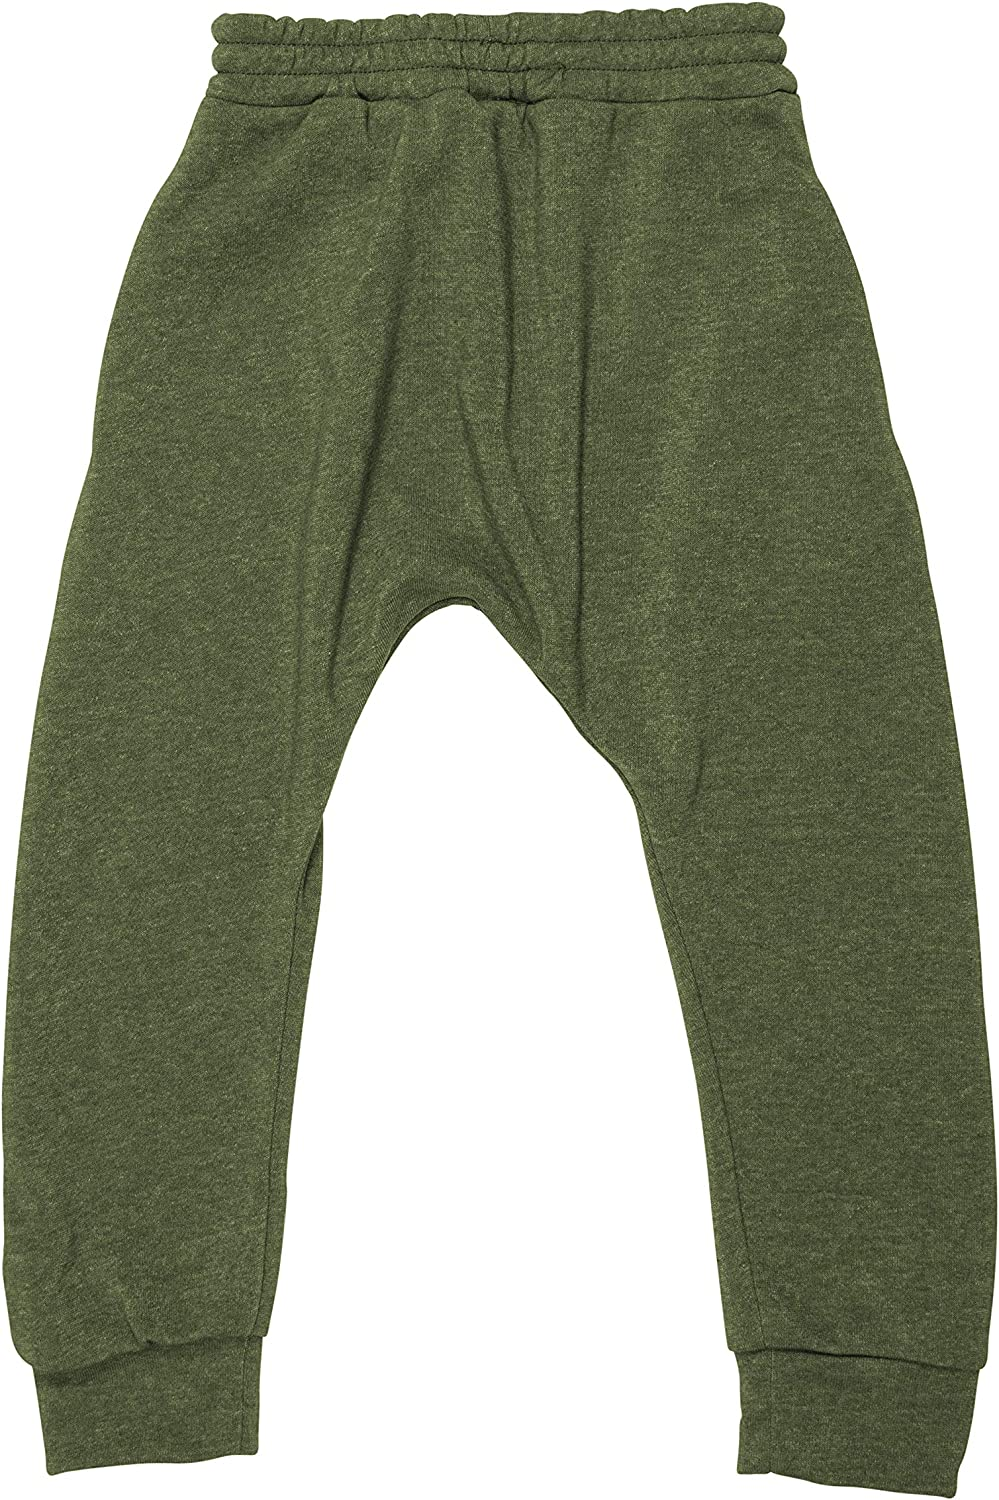 Unisex Drop Crotch Pants for Kids Great for Active Kids PLAYROOM Made in America Comfortable Athletic Pants